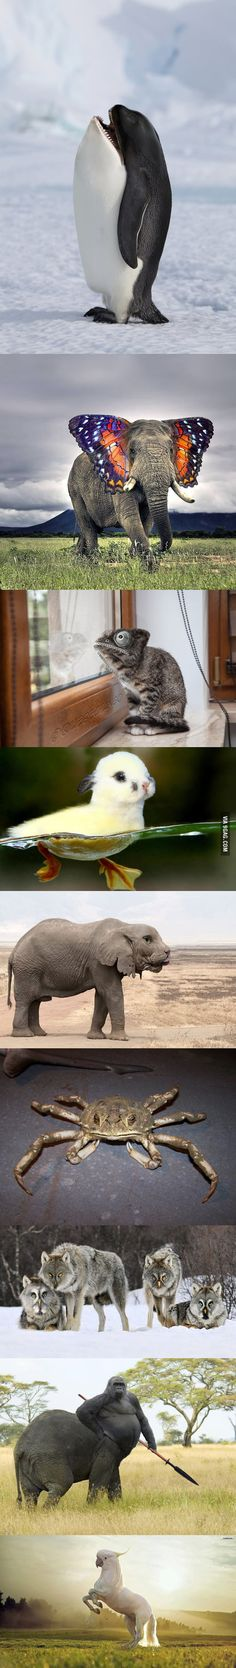 Majestic animal photoshopping - Panissue Share Majestic animal photoshopping<br> Majestic animal photoshopping Majestic animal photoshopping… my favorite is the last one :))))) Funny Sports Pictures, Funny Animal Pictures, Best Funny Pictures, Funny Pics, Funny Videos, Wierd Pictures, Animals And Pets, Baby Animals, Funny Animals